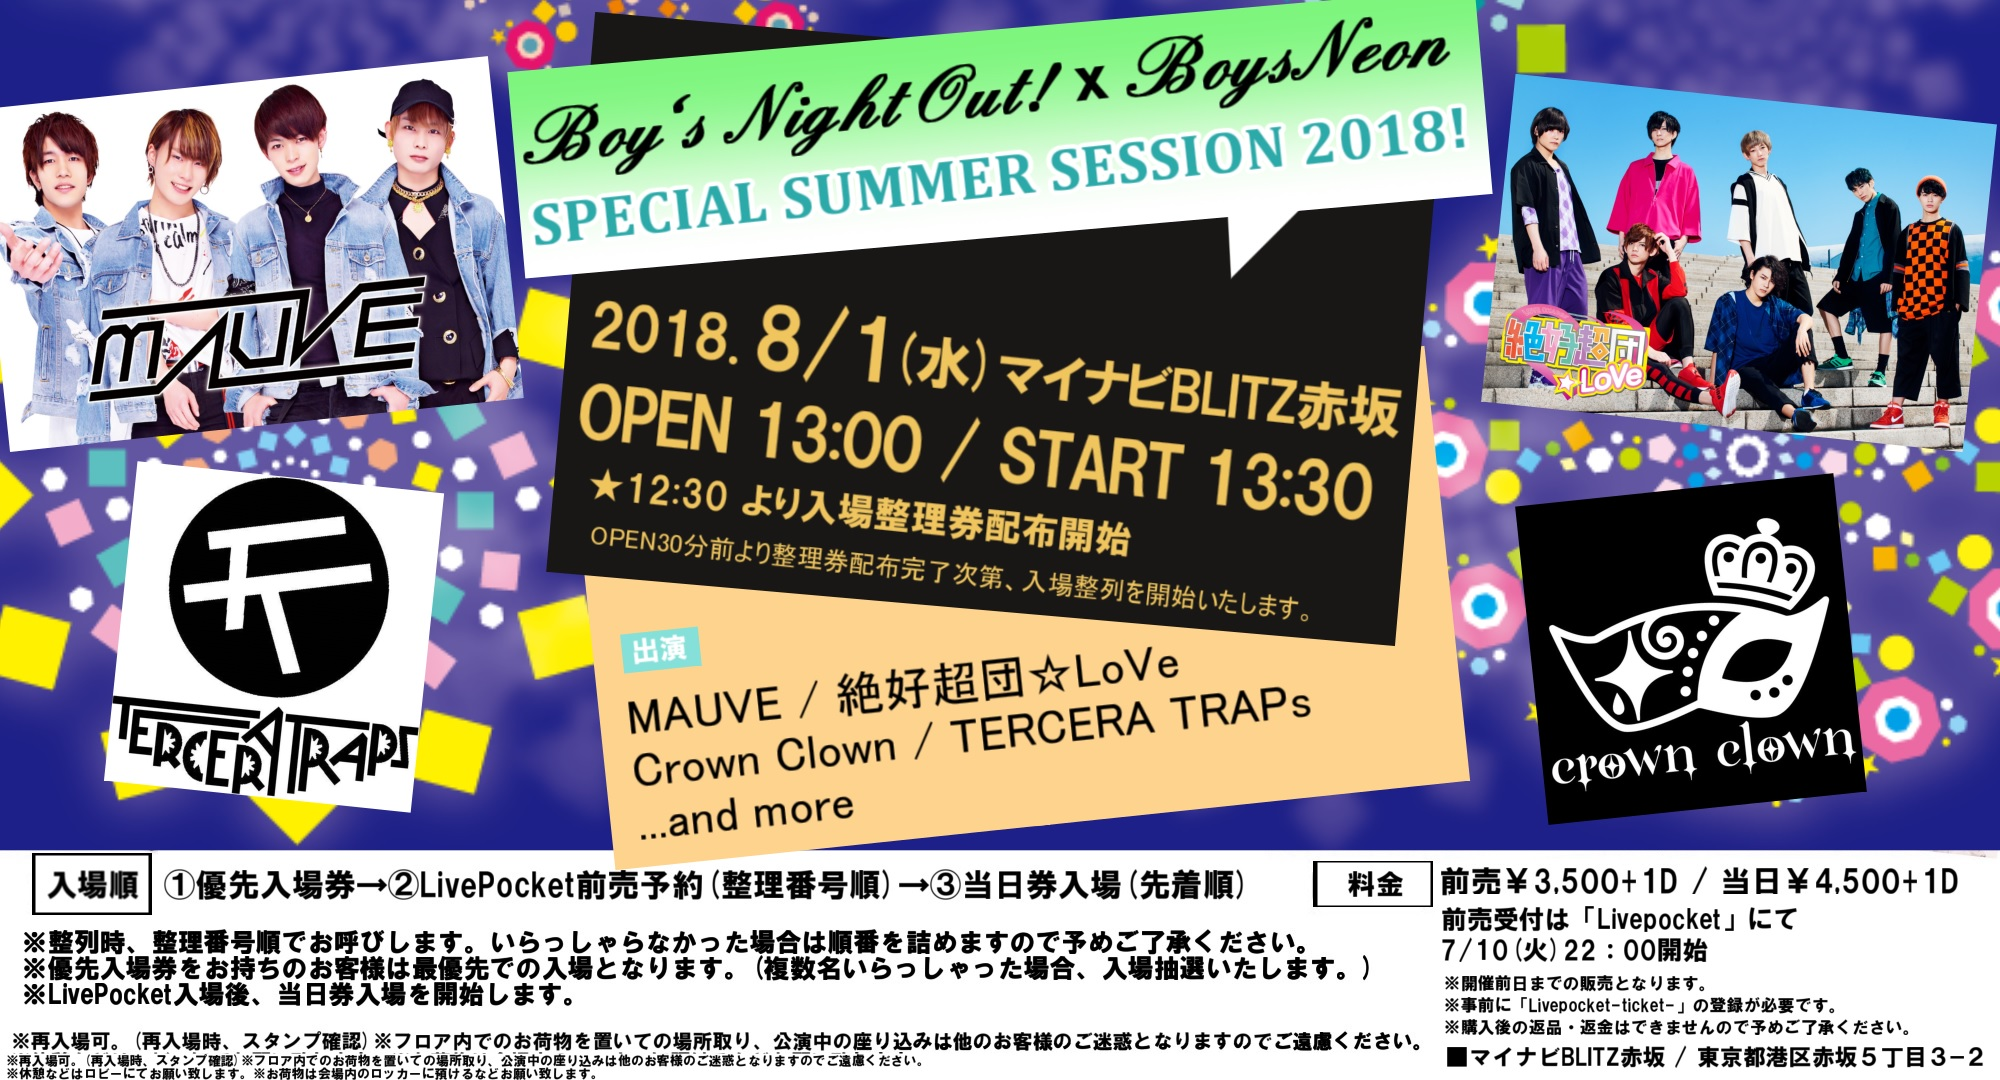 「Boy's Night Out!×BoysNeon」SPECIAL SUMMER SESSION 2018!